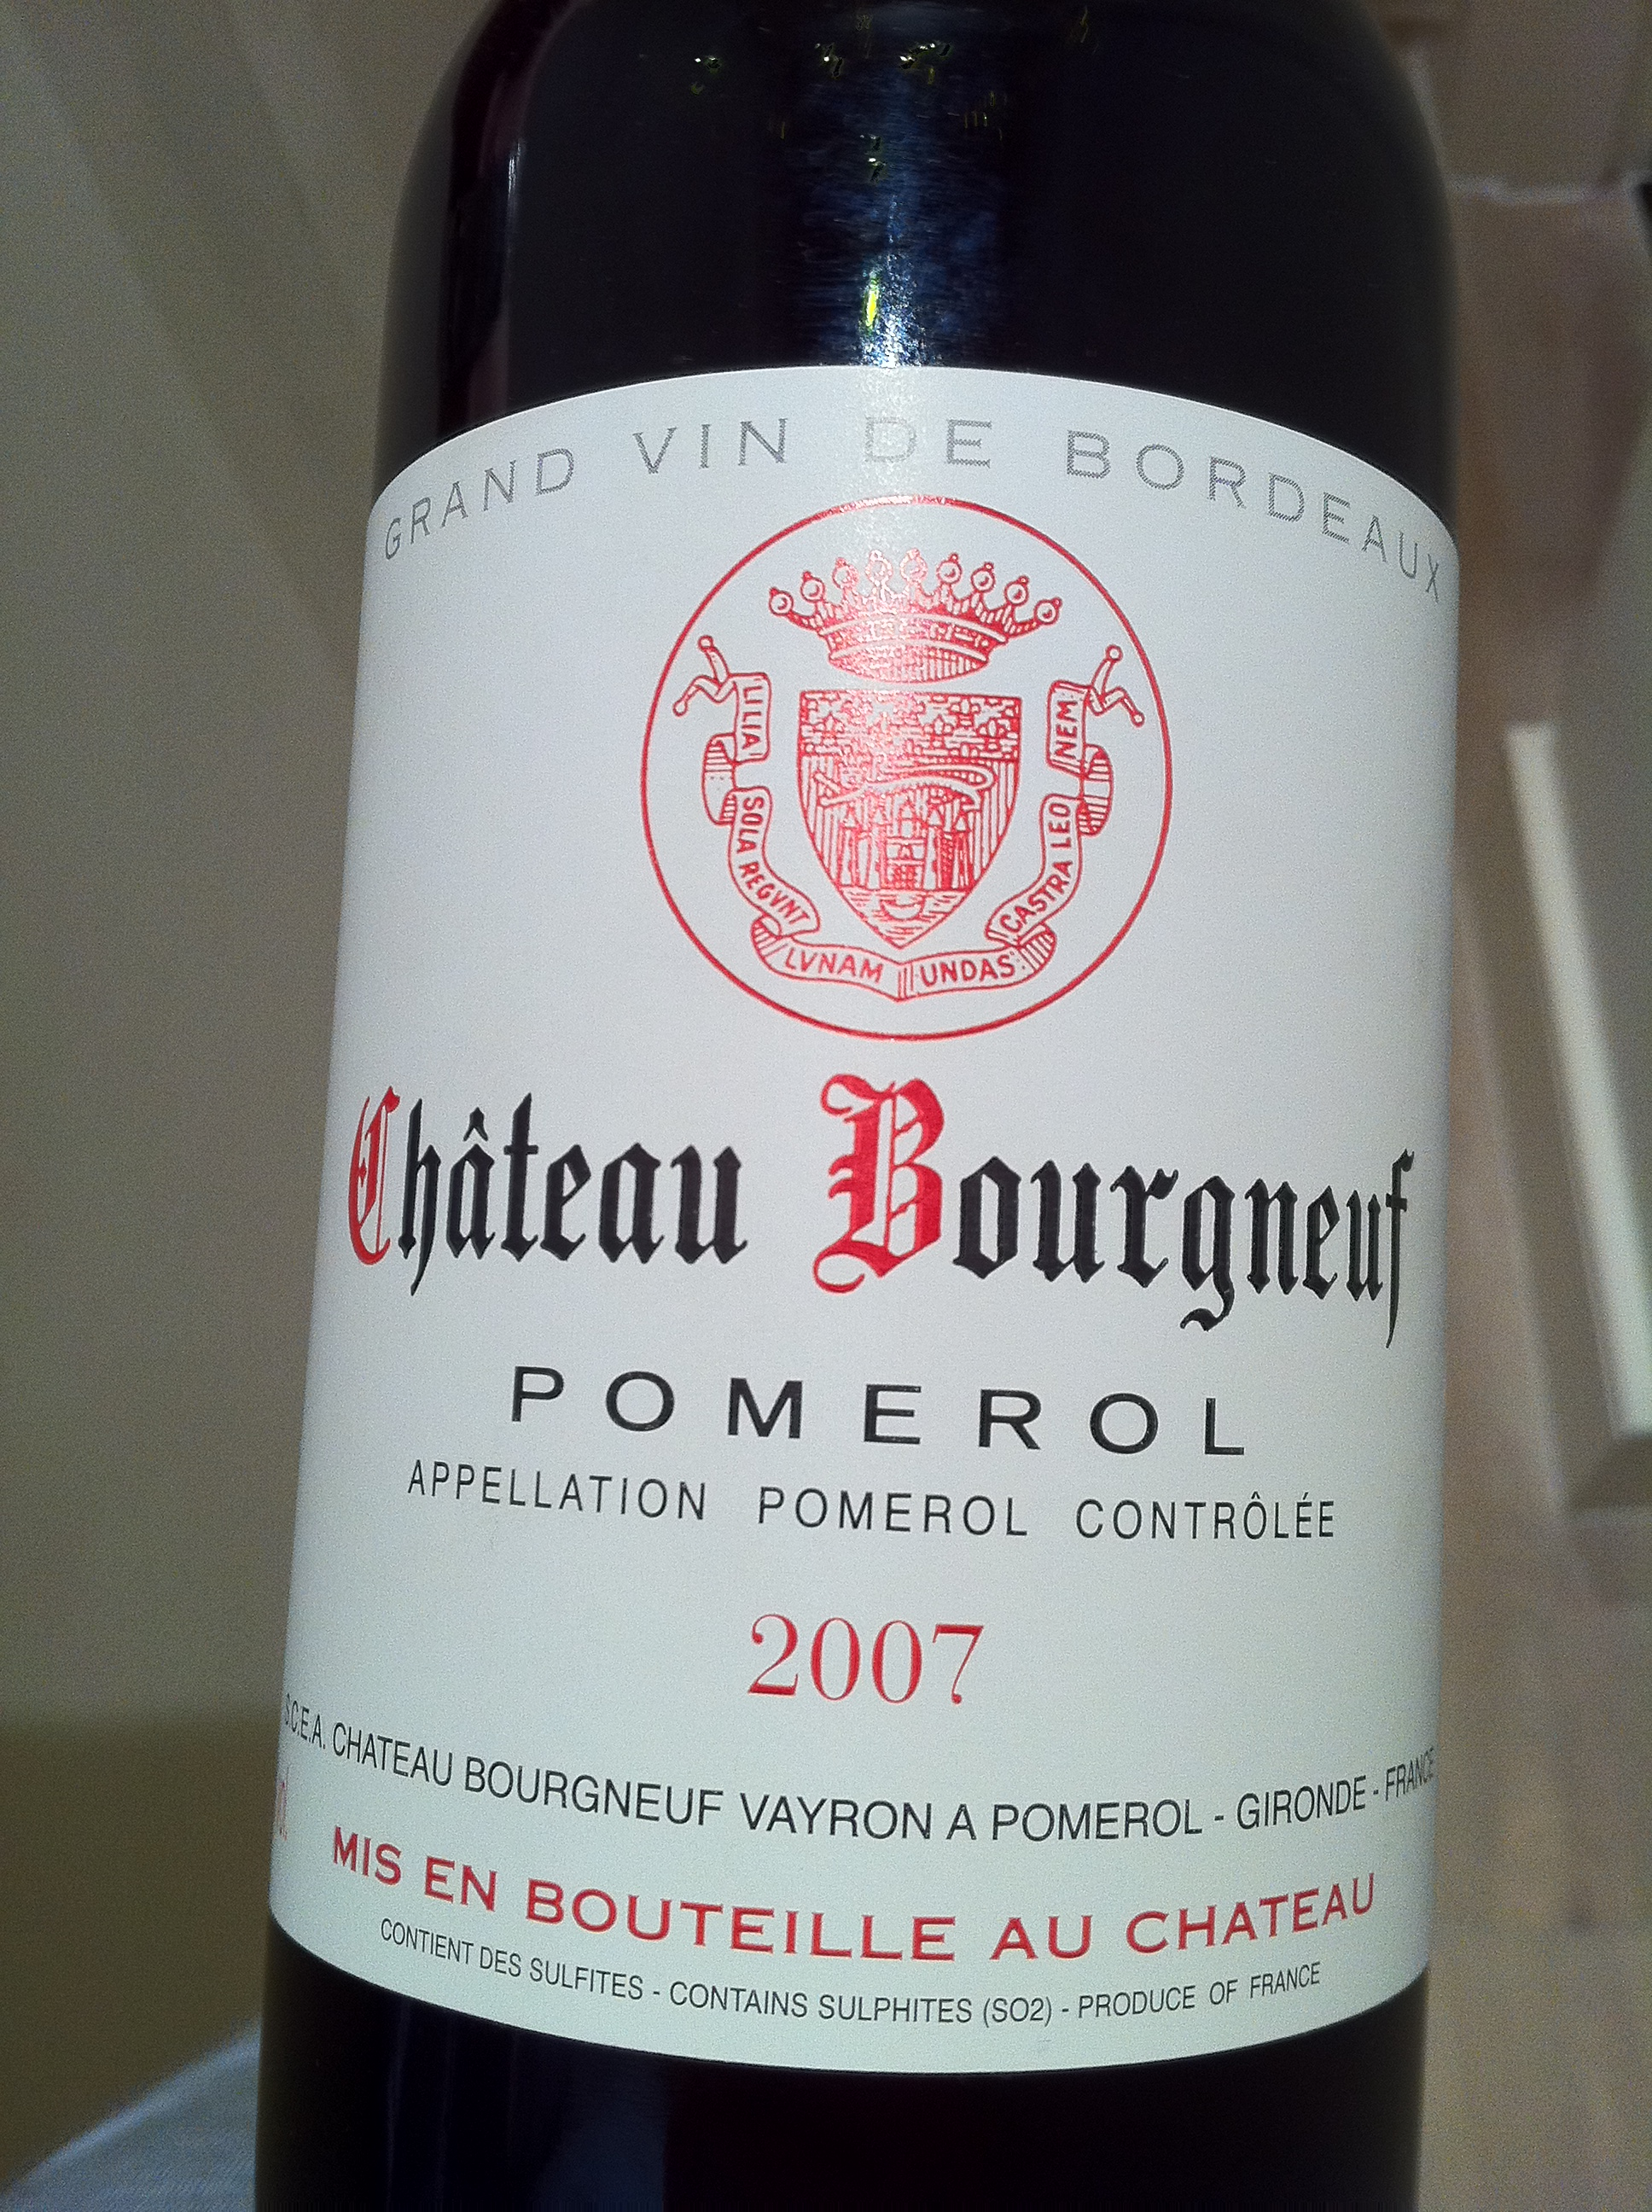 Chateau Bourgneuf – Great Pomerol for under £25